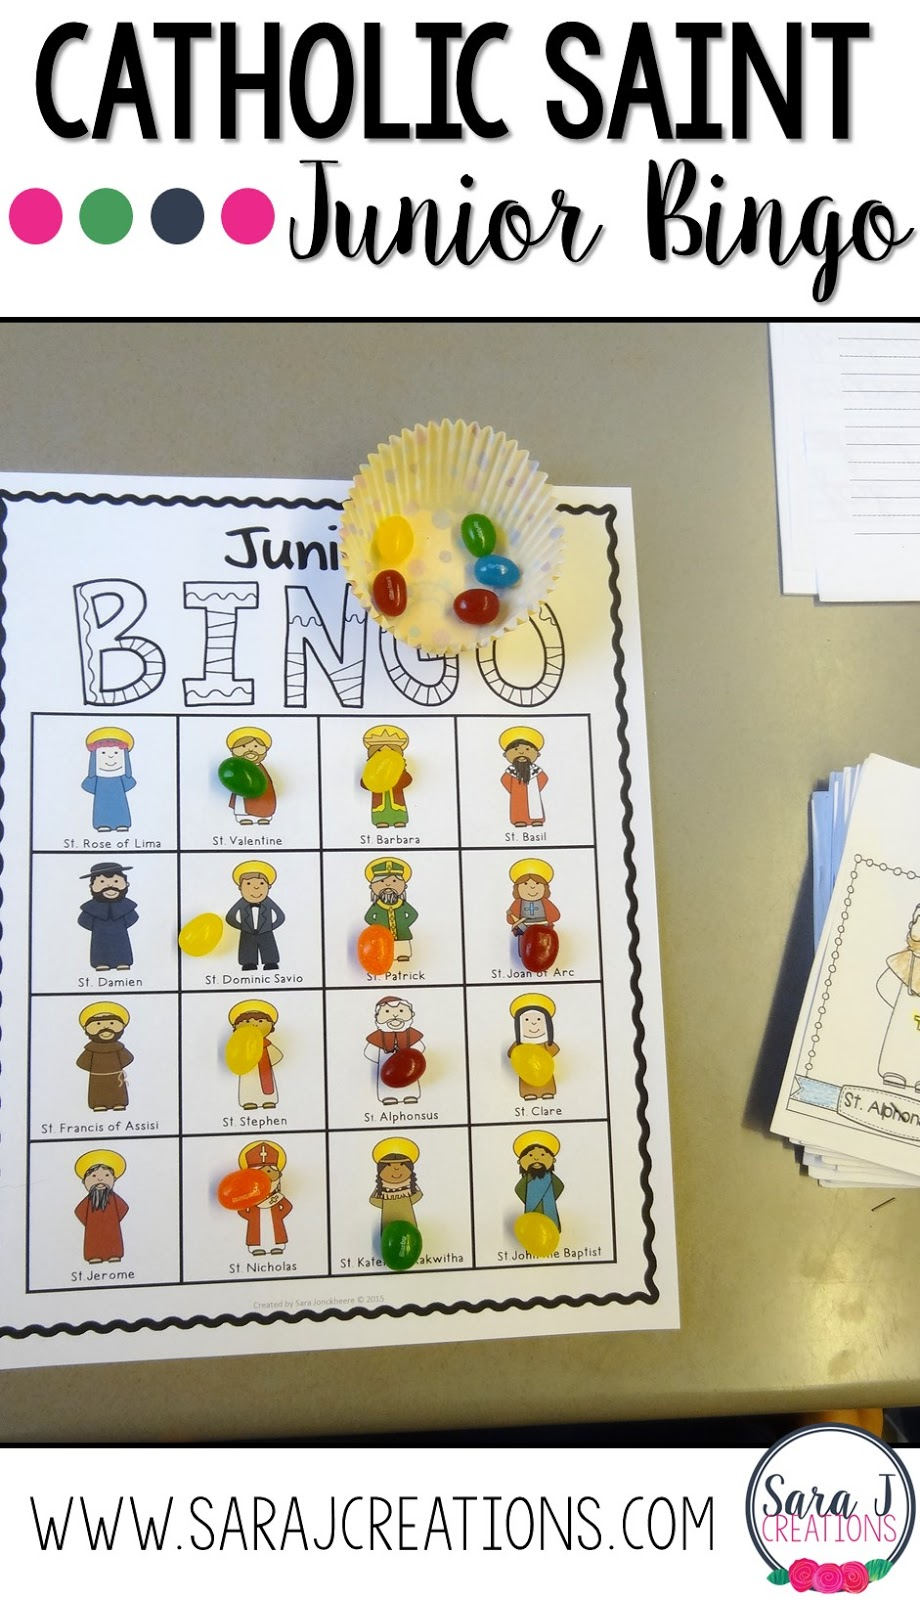 Catholic Saint Junior Bingo is a fun game for kids to review and learn about saints.